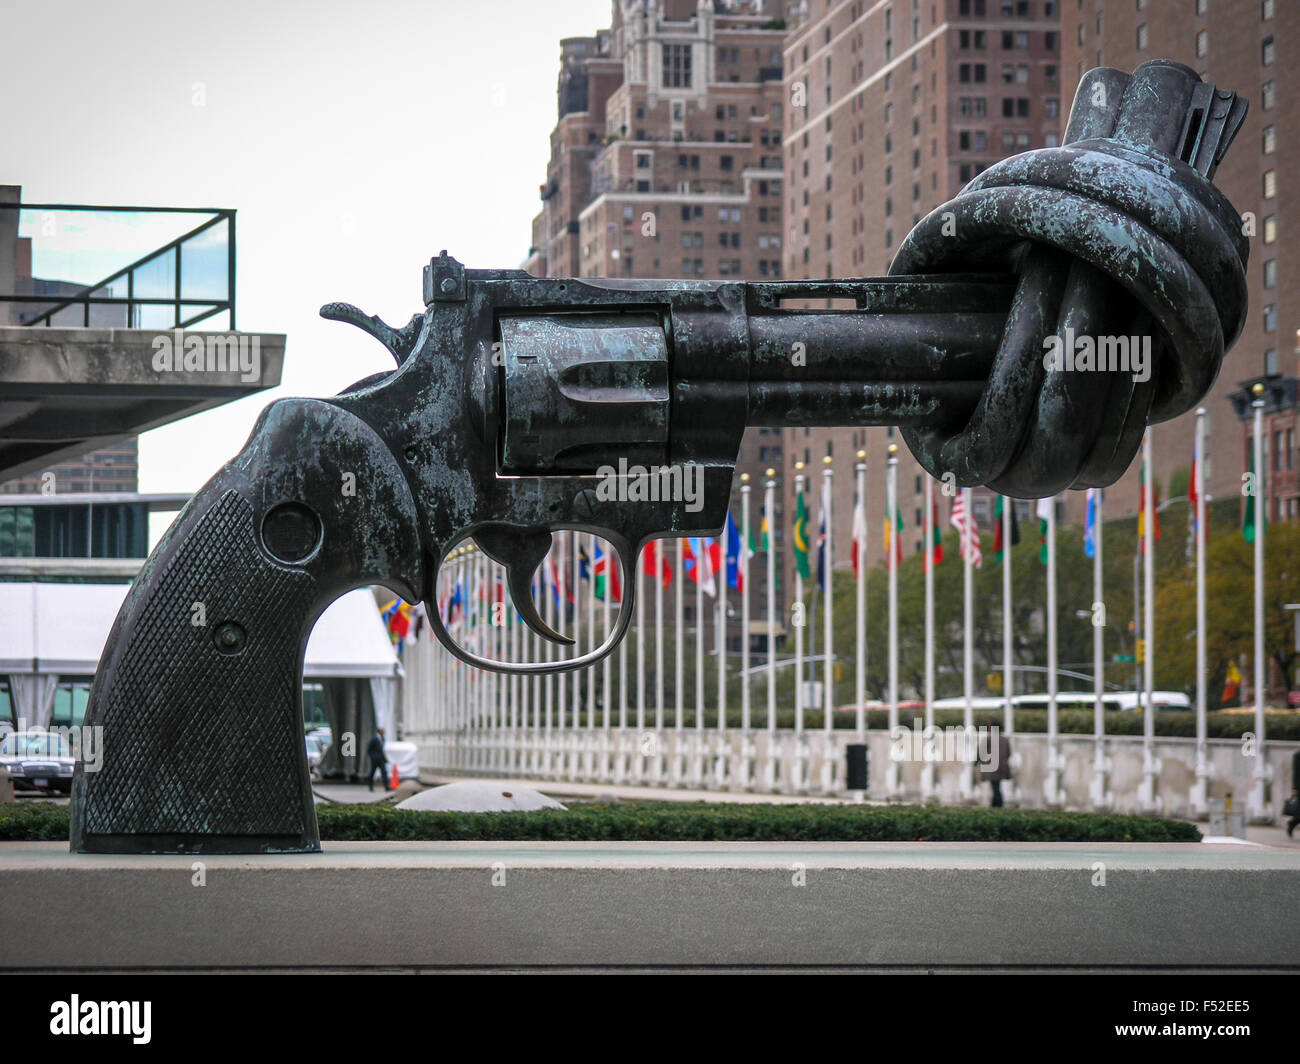 knotted-gun-sculpture-in-front-of-the-united-nations-building-new-F52EE5.jpg